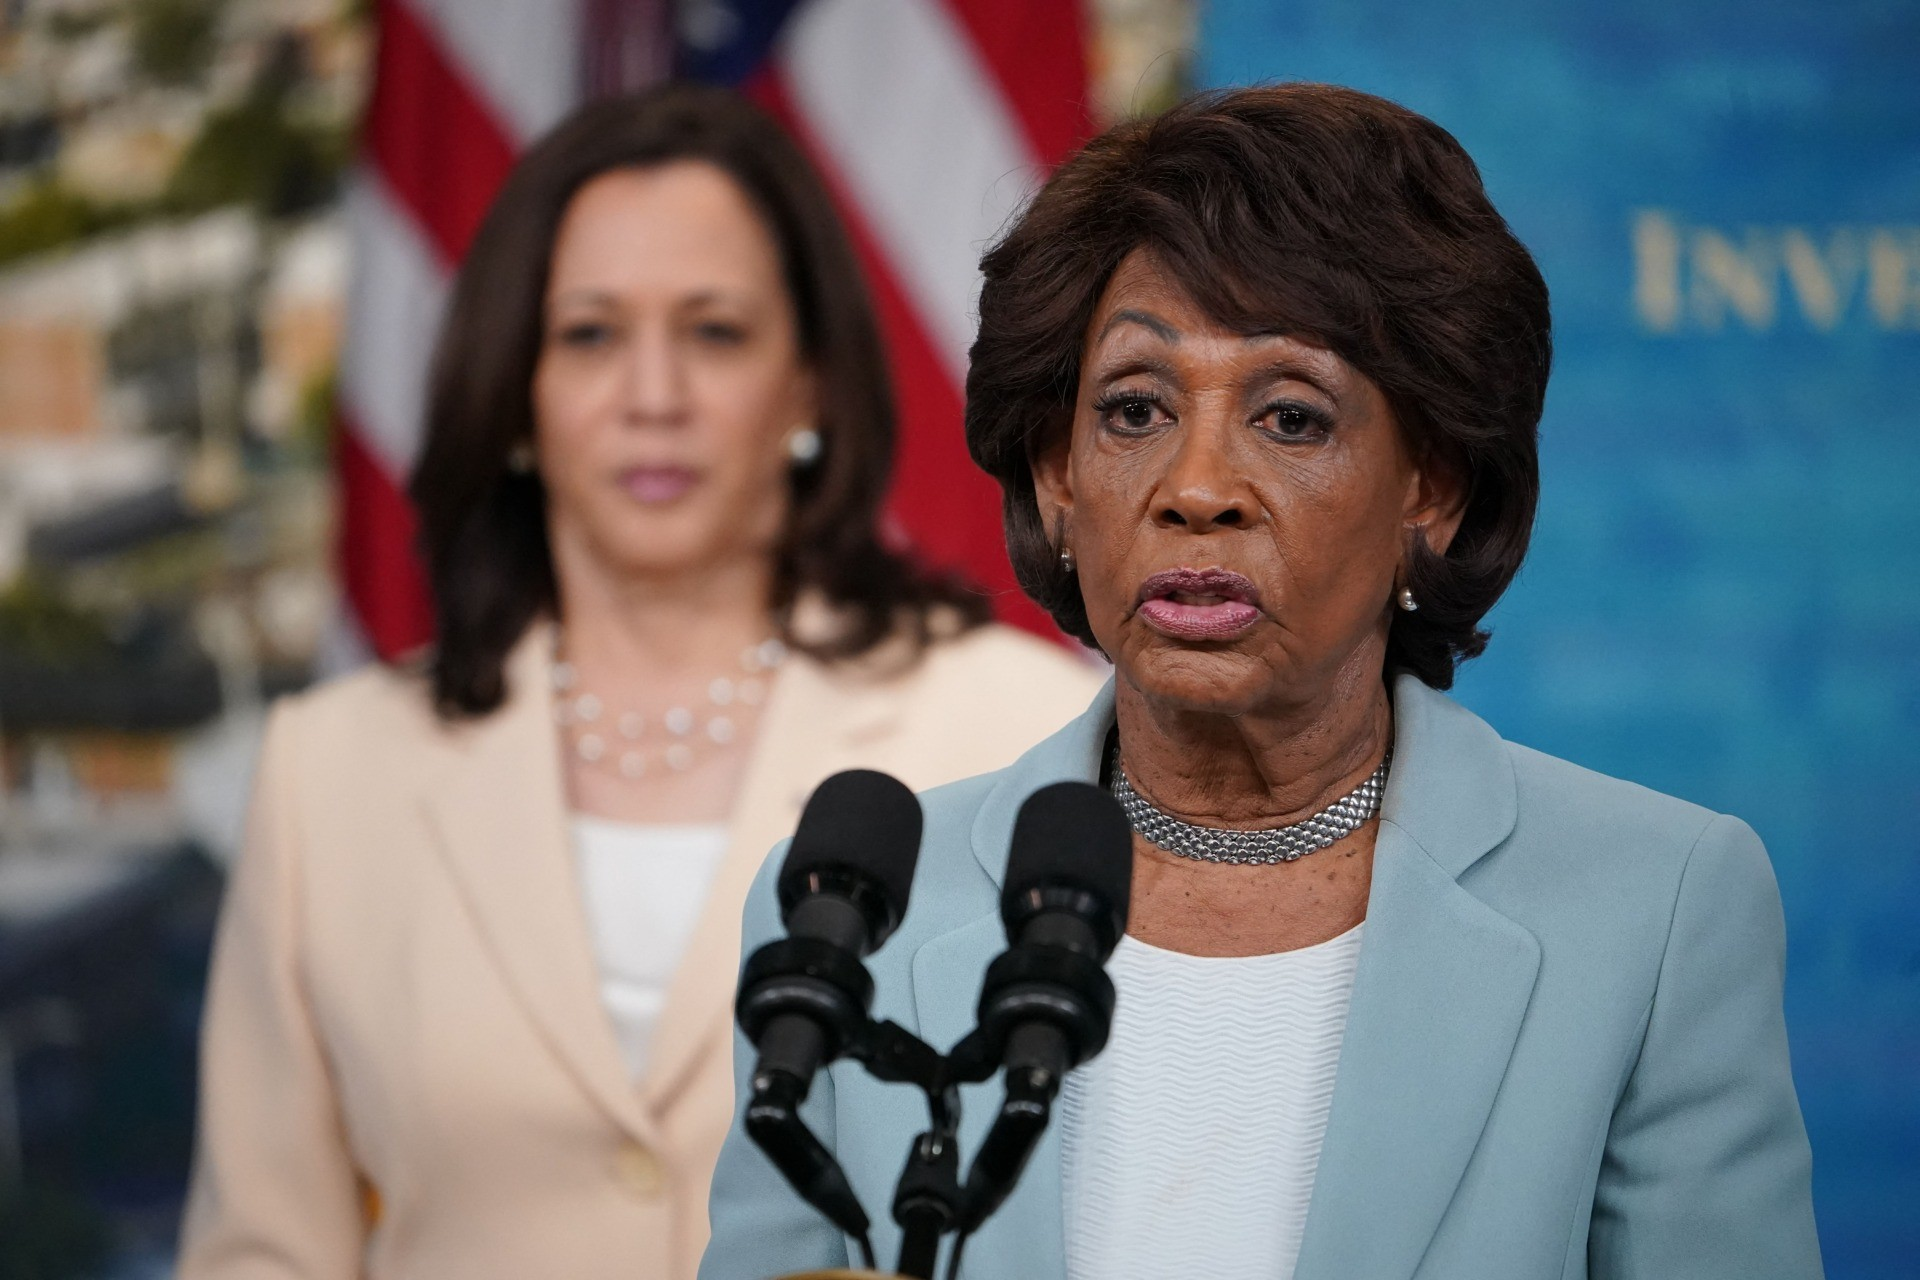 US Representative Maxine Waters,with Vice President Kamala Harris, speaks during the announcement for the disbursement of nearly $1.25 billion for Community Development Financial Institutions (CDFIs) in the South Court Auditorium of the Eisenhower Executive Office Building, next to the White House, in Washington, DC on June 15, 2021. (Photo by MANDEL NGAN / AFP) (Photo by MANDEL NGAN/AFP via Getty Images)